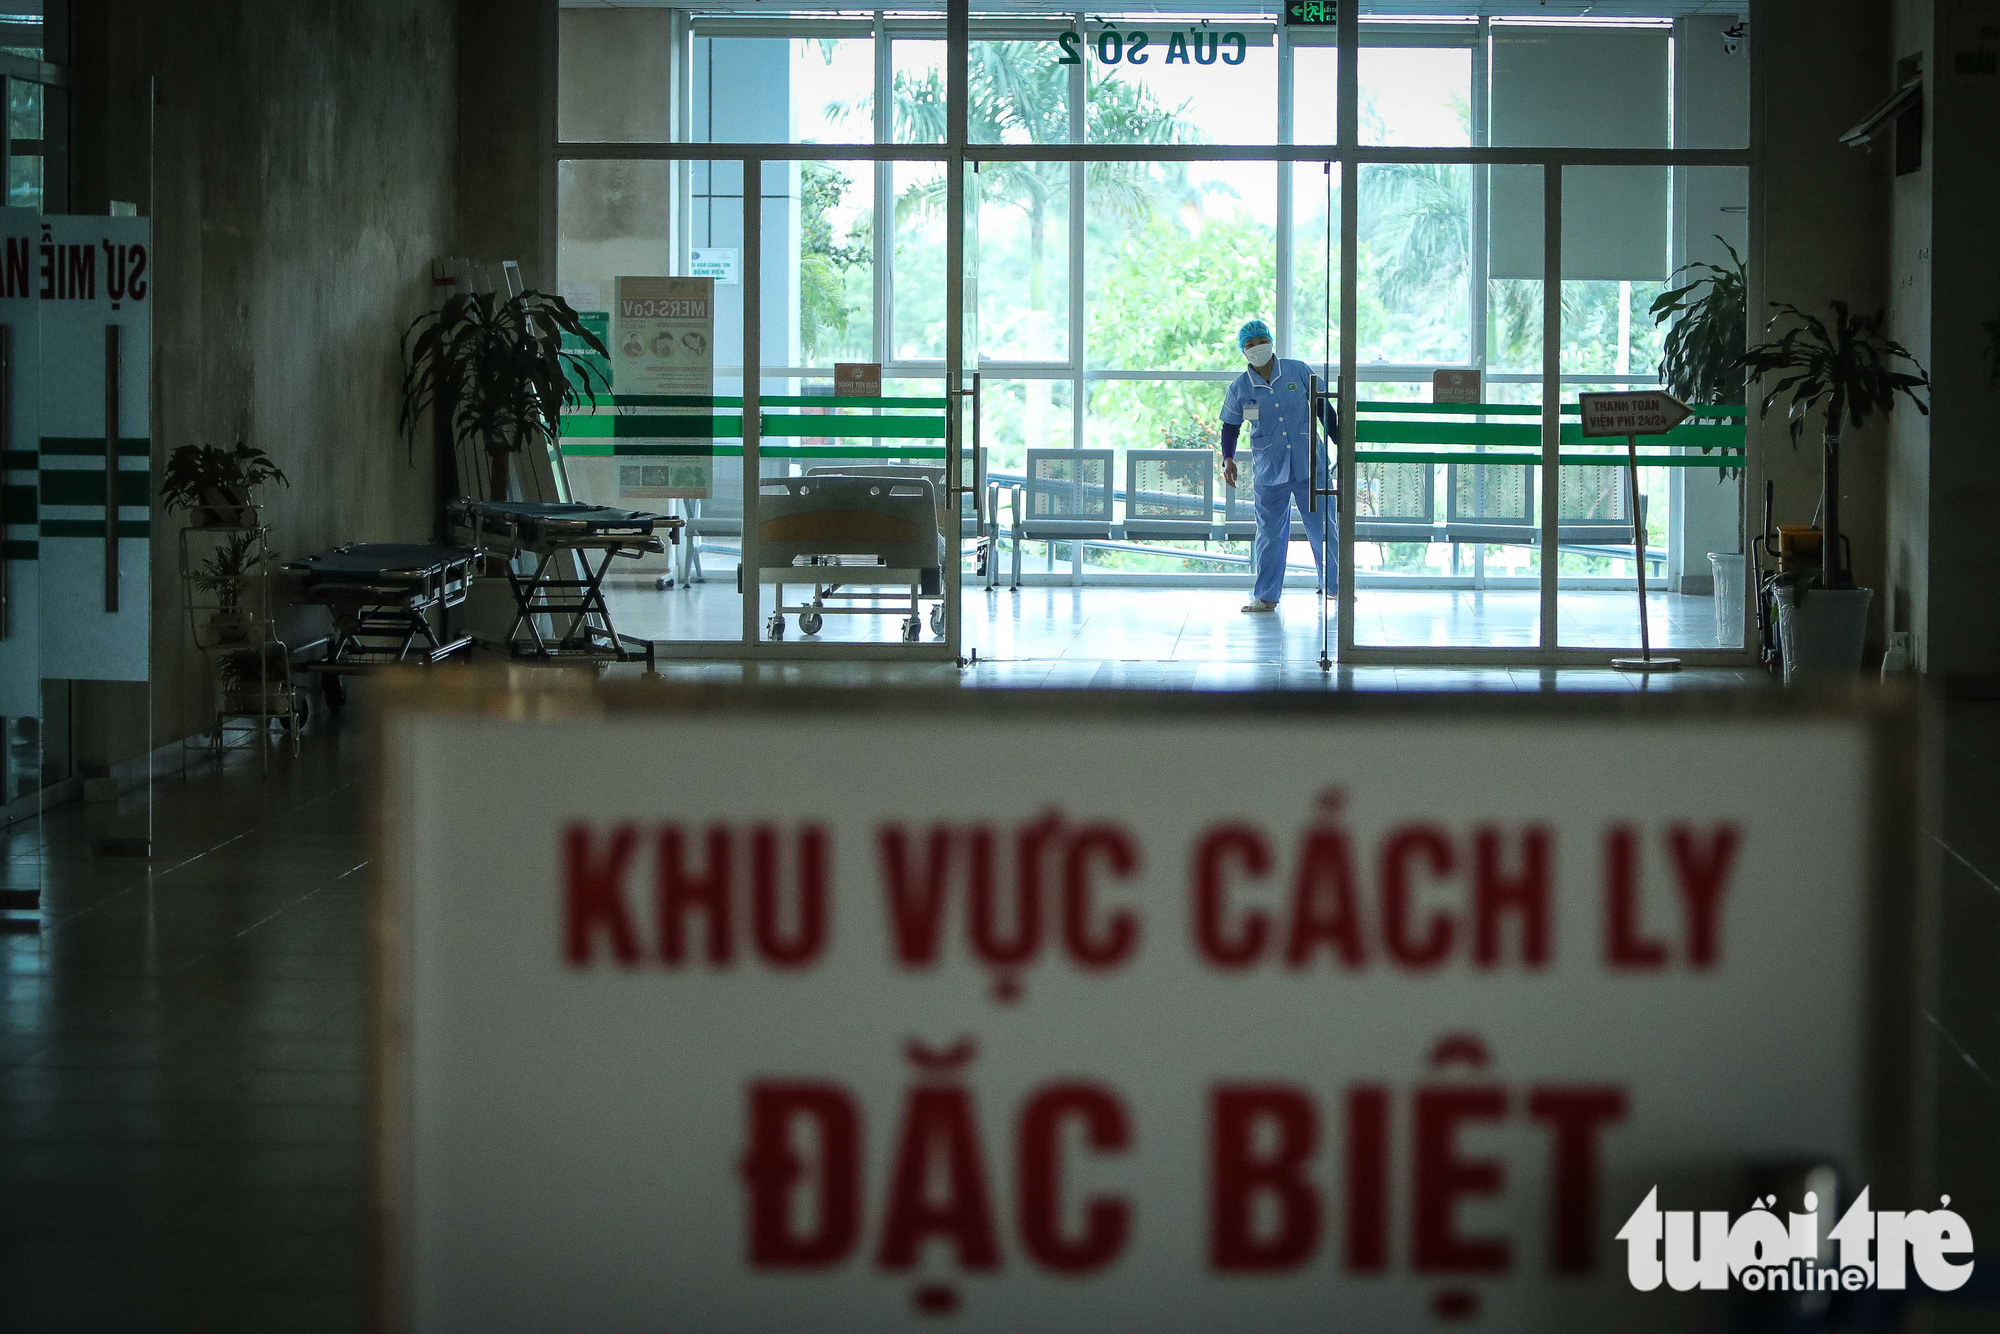 A special isolation zone located on the first floor is reserved for patients who are in bad health at the National Hospital for Tropical Diseases in Dong Anh District in Hanoi, Vietnam. Photo: Nguyen Khanh / Tuoi Tre